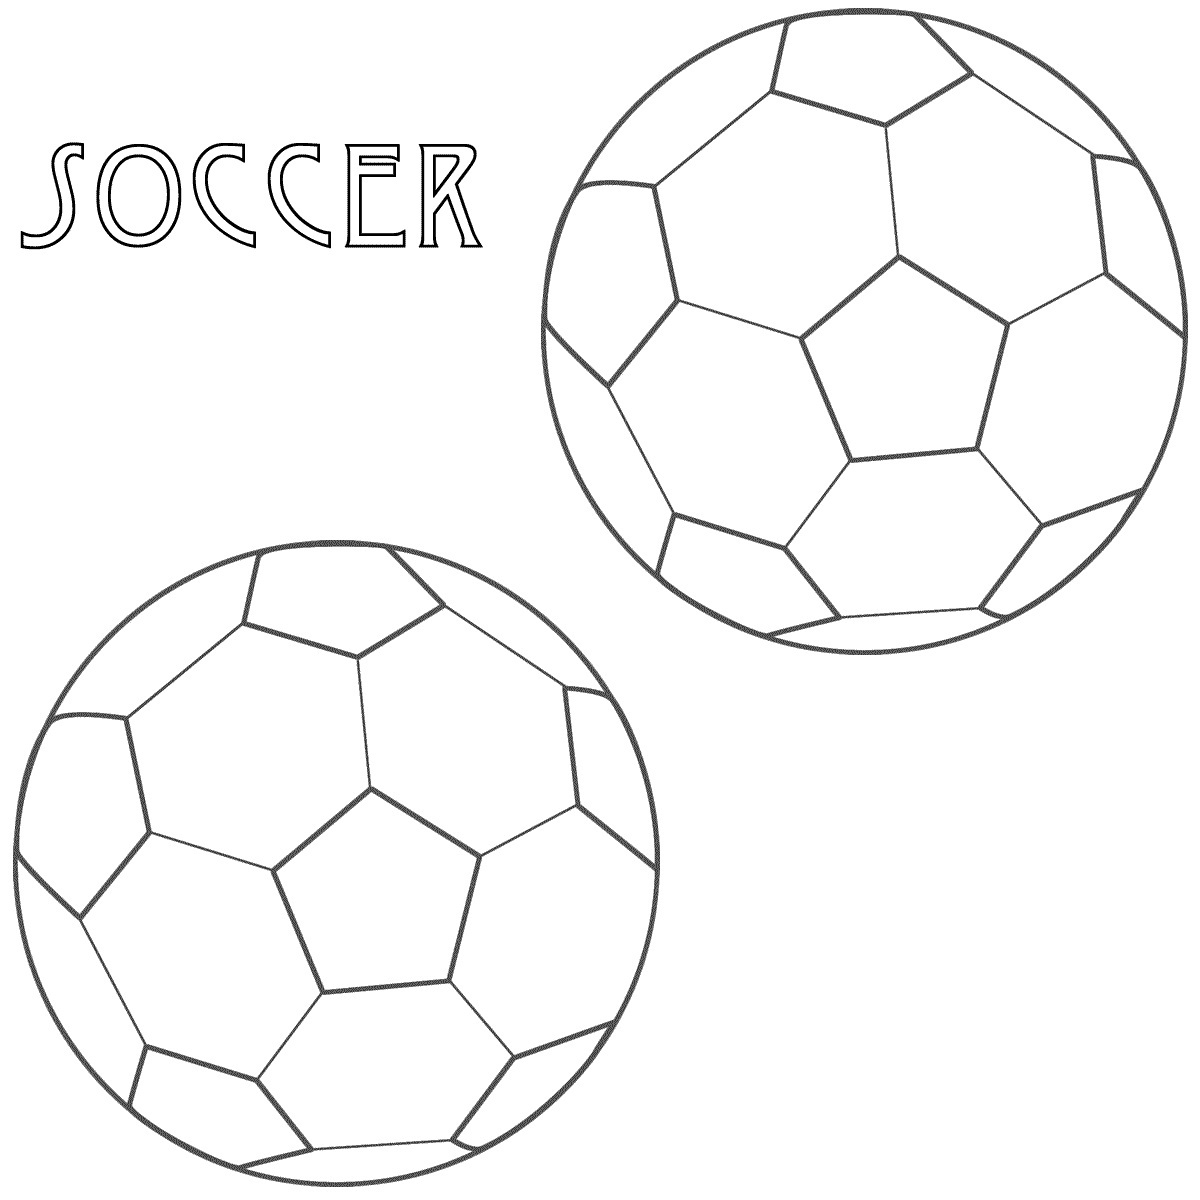 T ball coloring pages - Soccer Coloring Page